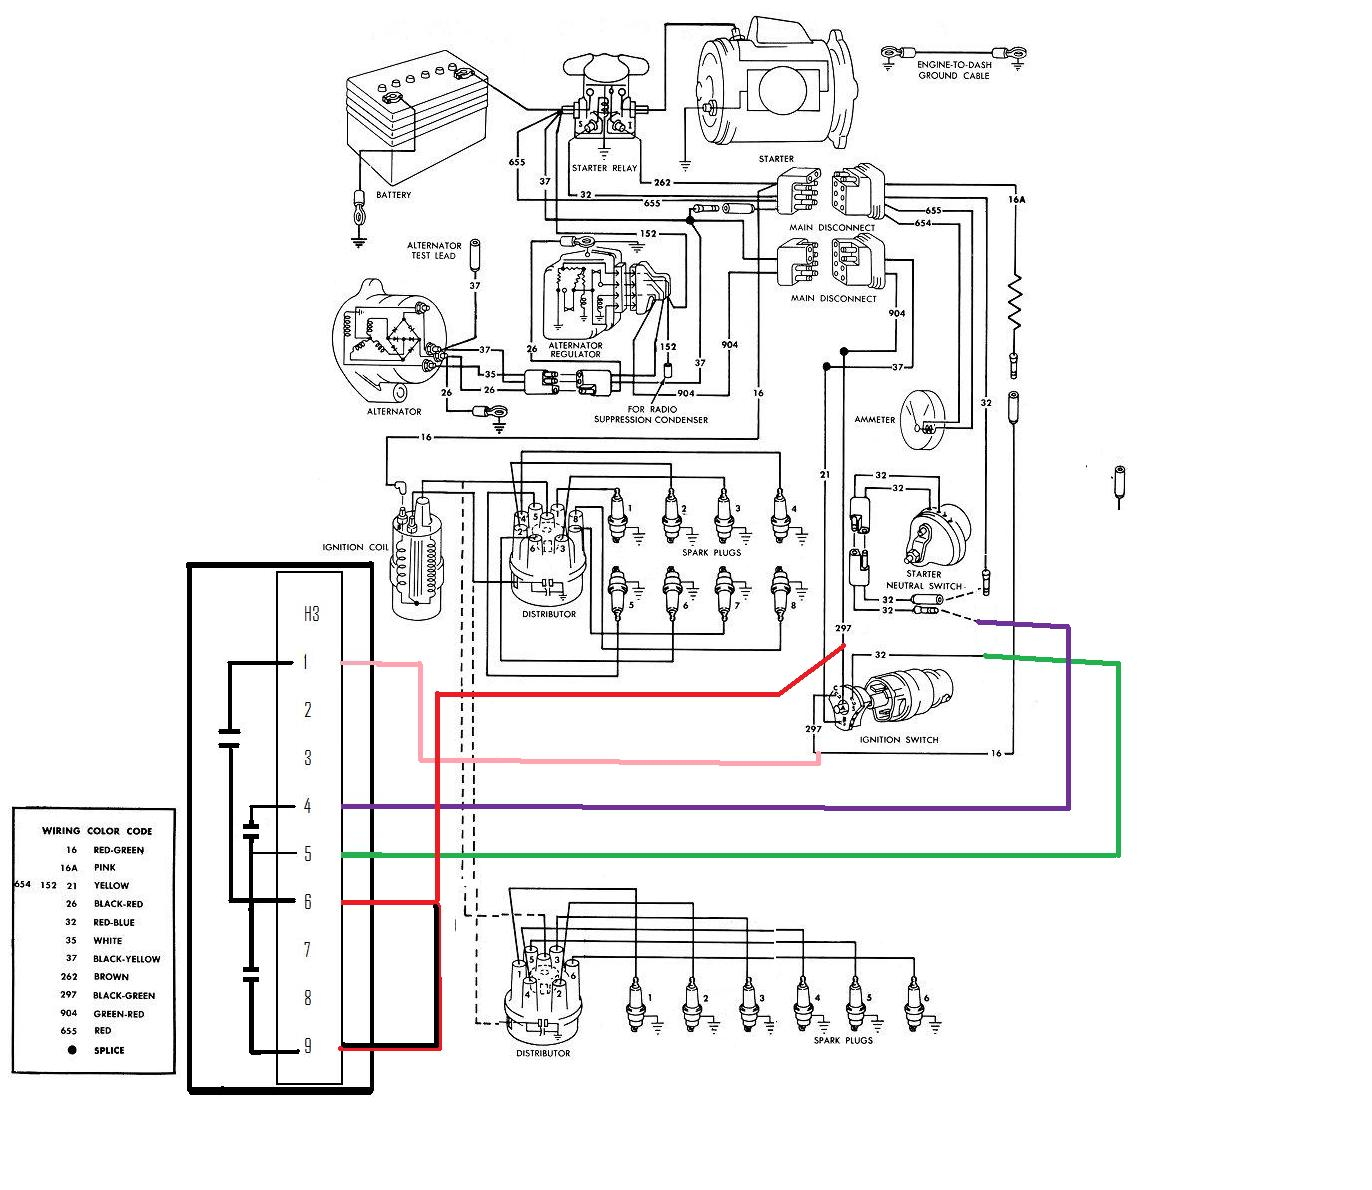 remote start wiring diagram wiring diagram and schematic design onan generator wiring diagram diagrams and schematics avital remote start wiring diagram